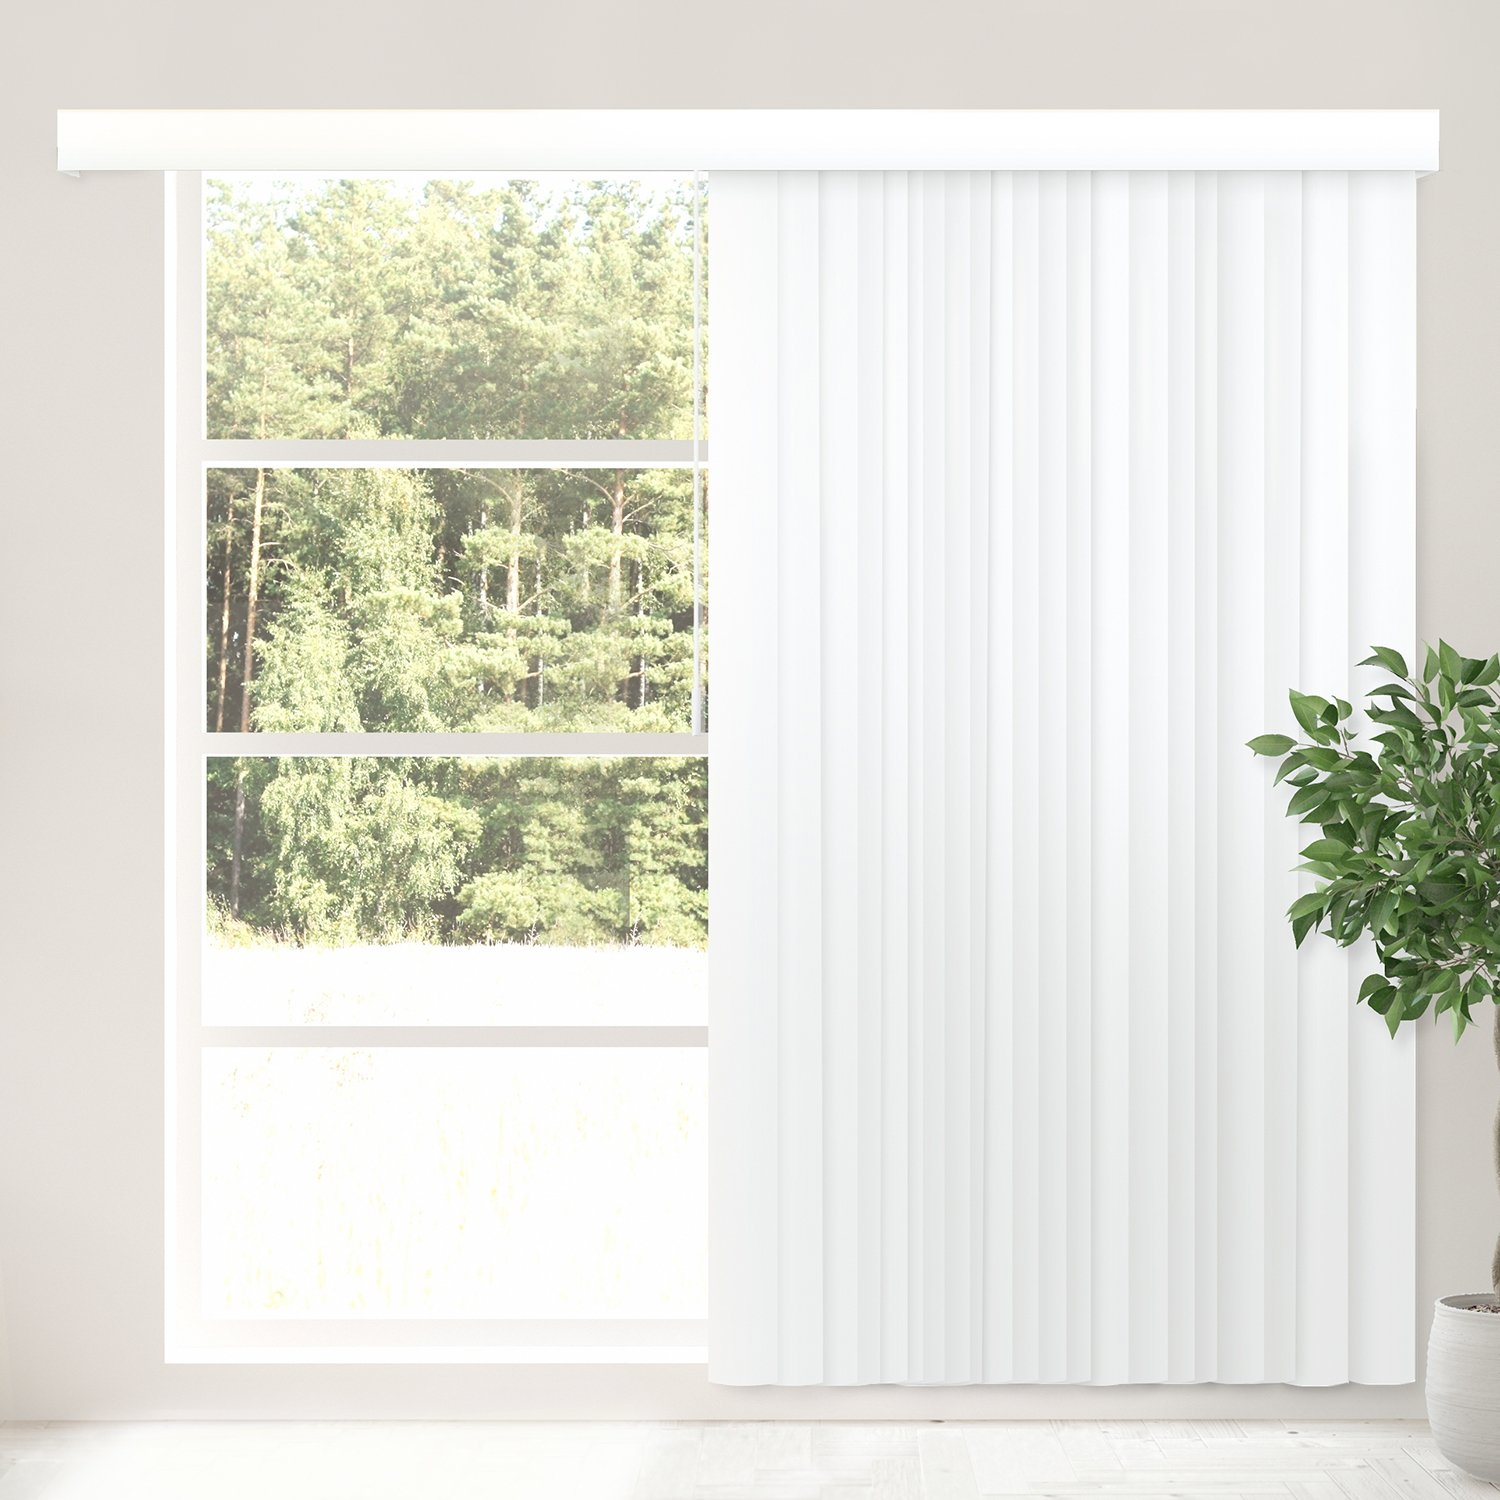 CHICOLOGY Cordless Vertical Blinds Patio Door or Large Window Shade 78\  W X 84\  H Oxford White (PVC)  sc 1 st  Amazon.com & Amazon.com: CHICOLOGY Cordless Vertical Blinds Patio Door or Large ...